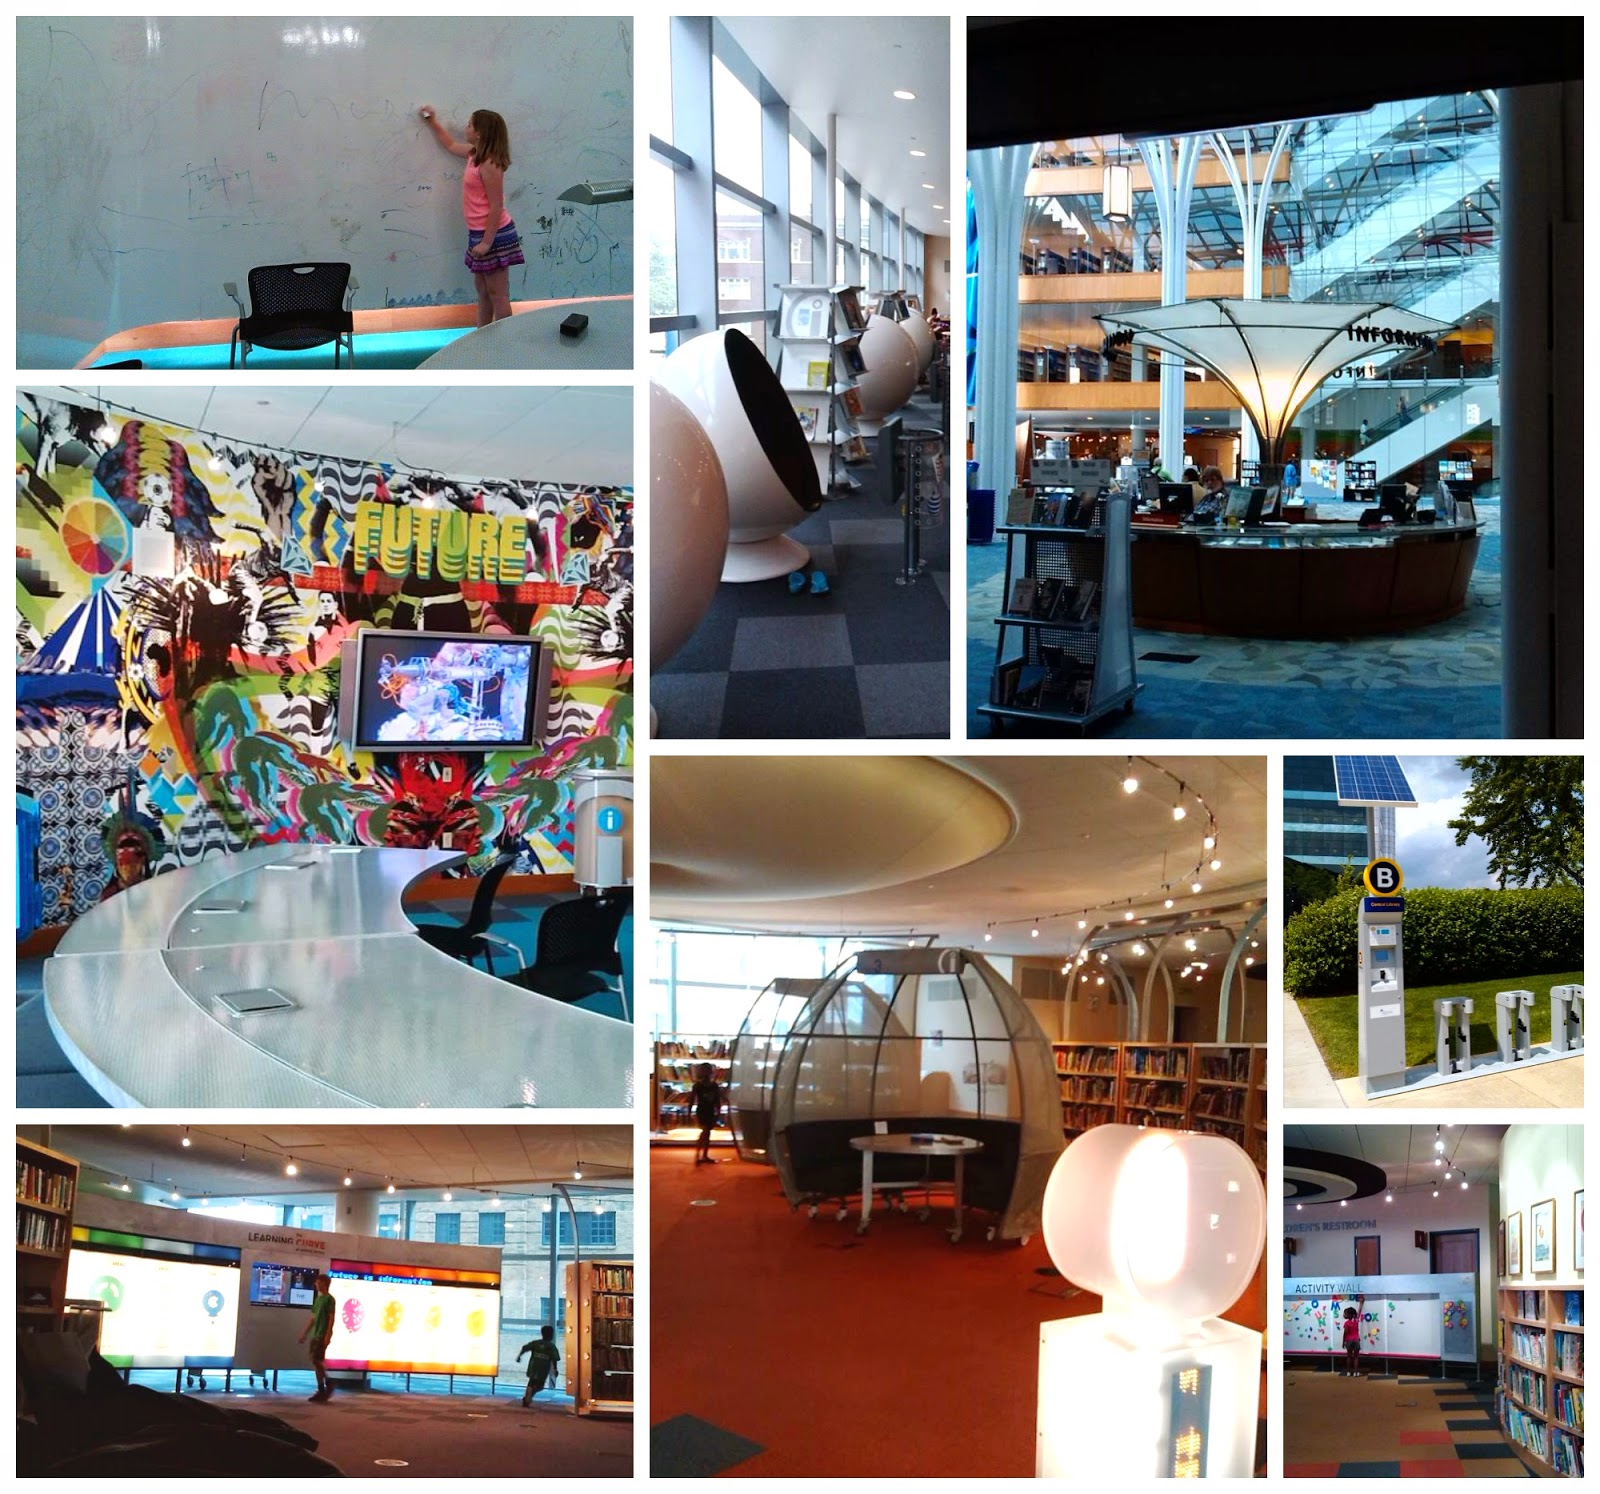 Study Pods, Think Tank, Kid's Activity Wall for Preschoolers, Pacer's Rent a Bike Program, and See-a-story spinning seats at The Learning Curve, Downtown Indianapolis, Indiana in the Central Library.